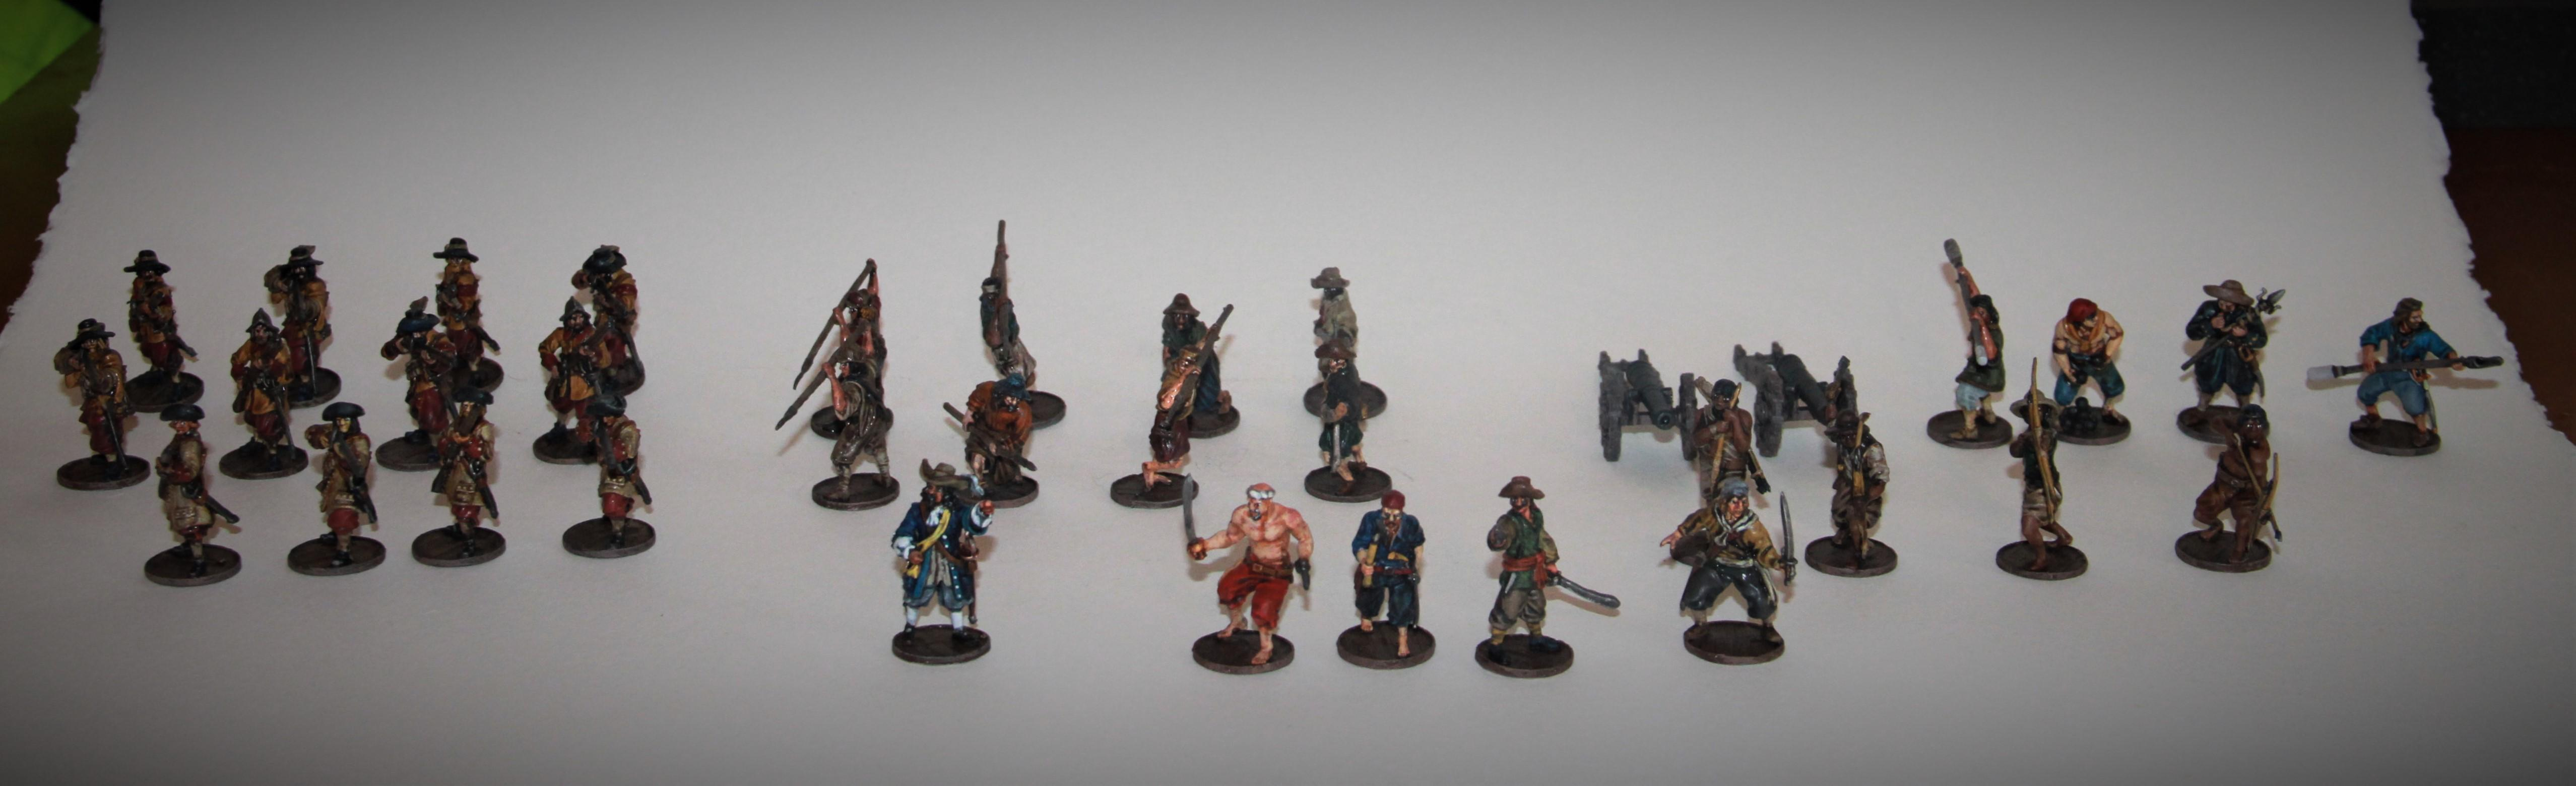 Blood And Plunder, Flintlock Games, Historical, Pirates, Spanish